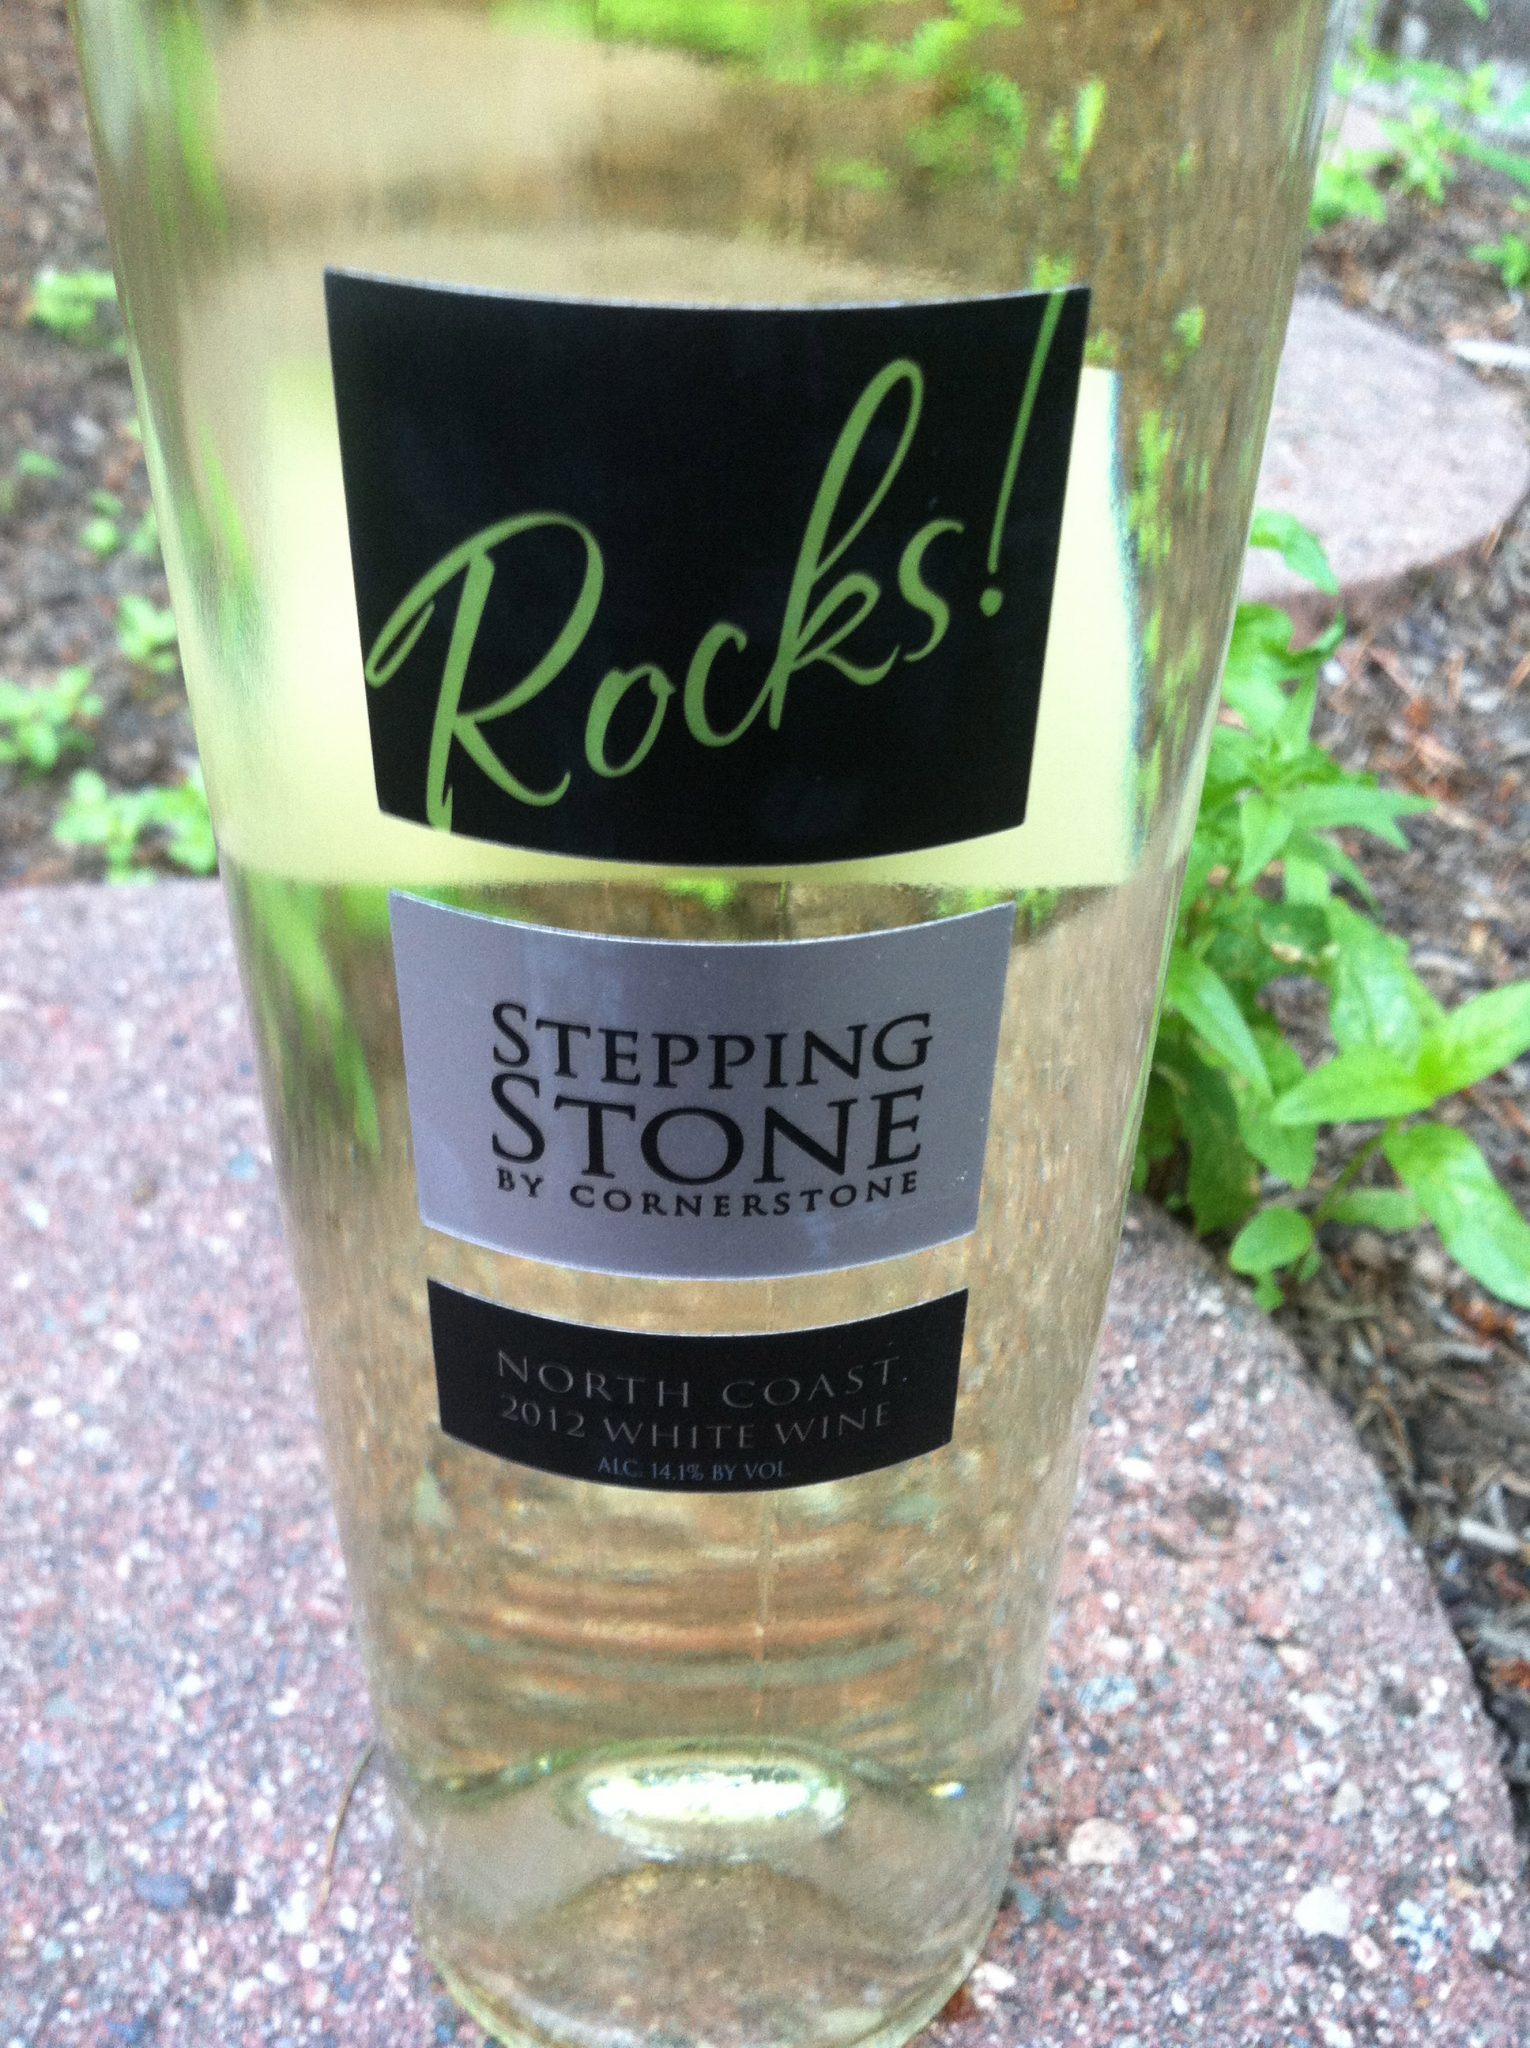 2012 Stepping Stone Rocks White Wine